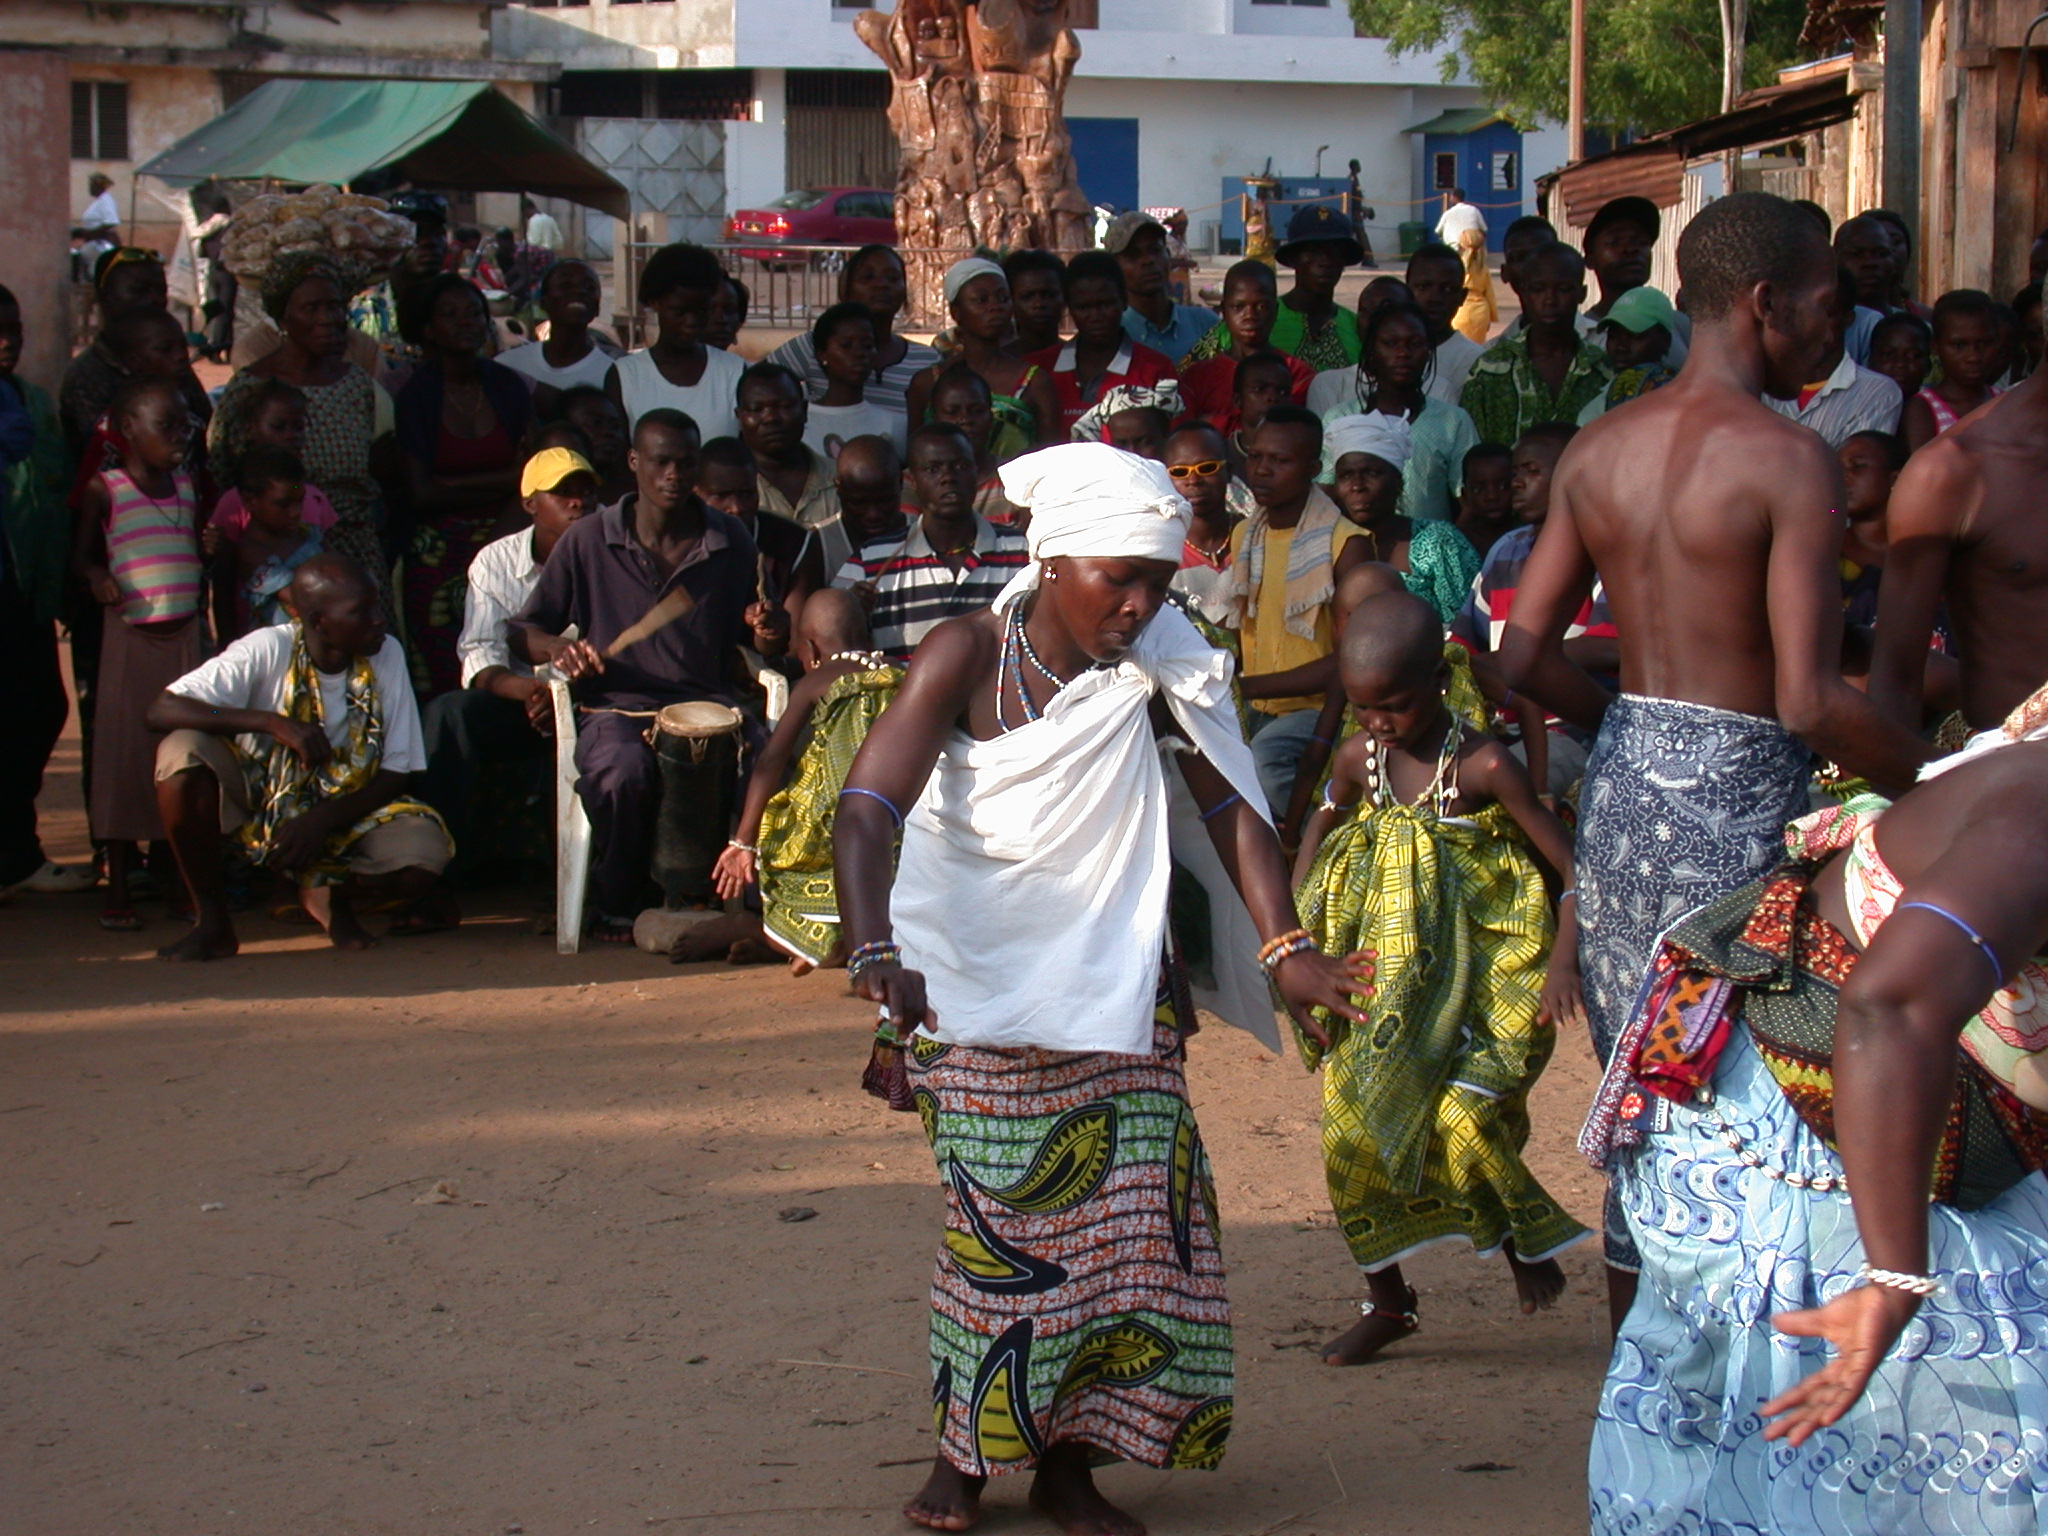 Dancing to the Drums, Vodun Ritual, Ouidah, Benin